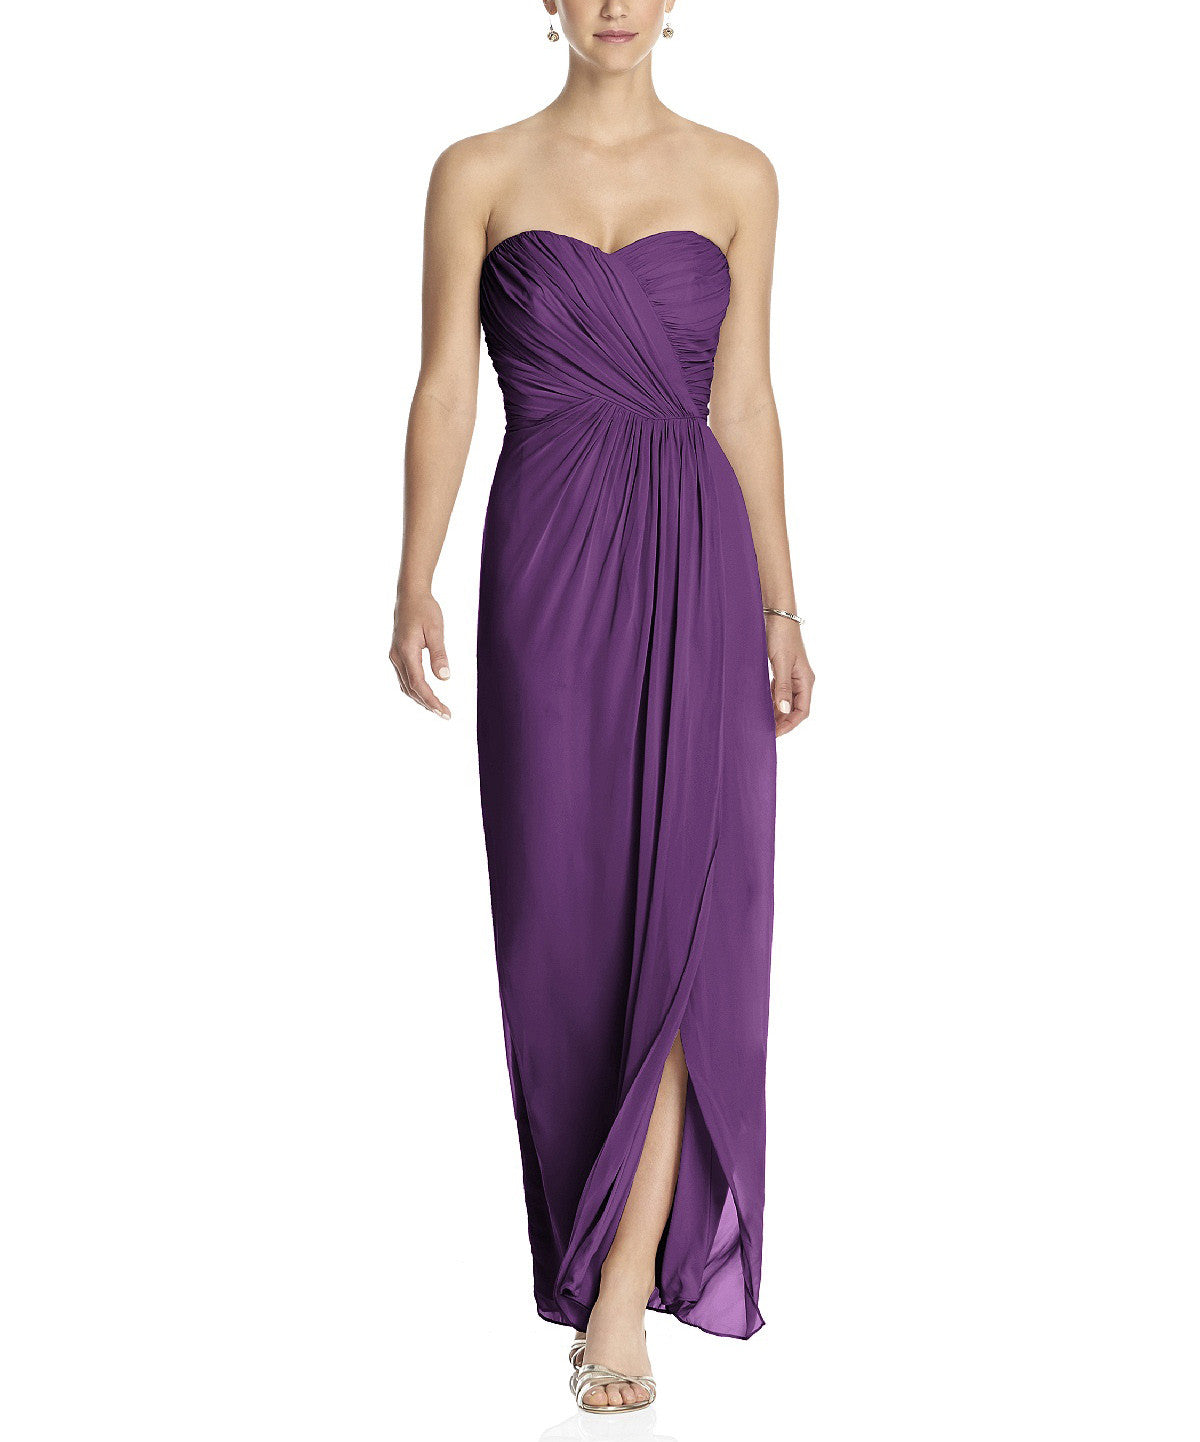 Dessy dress colors and names